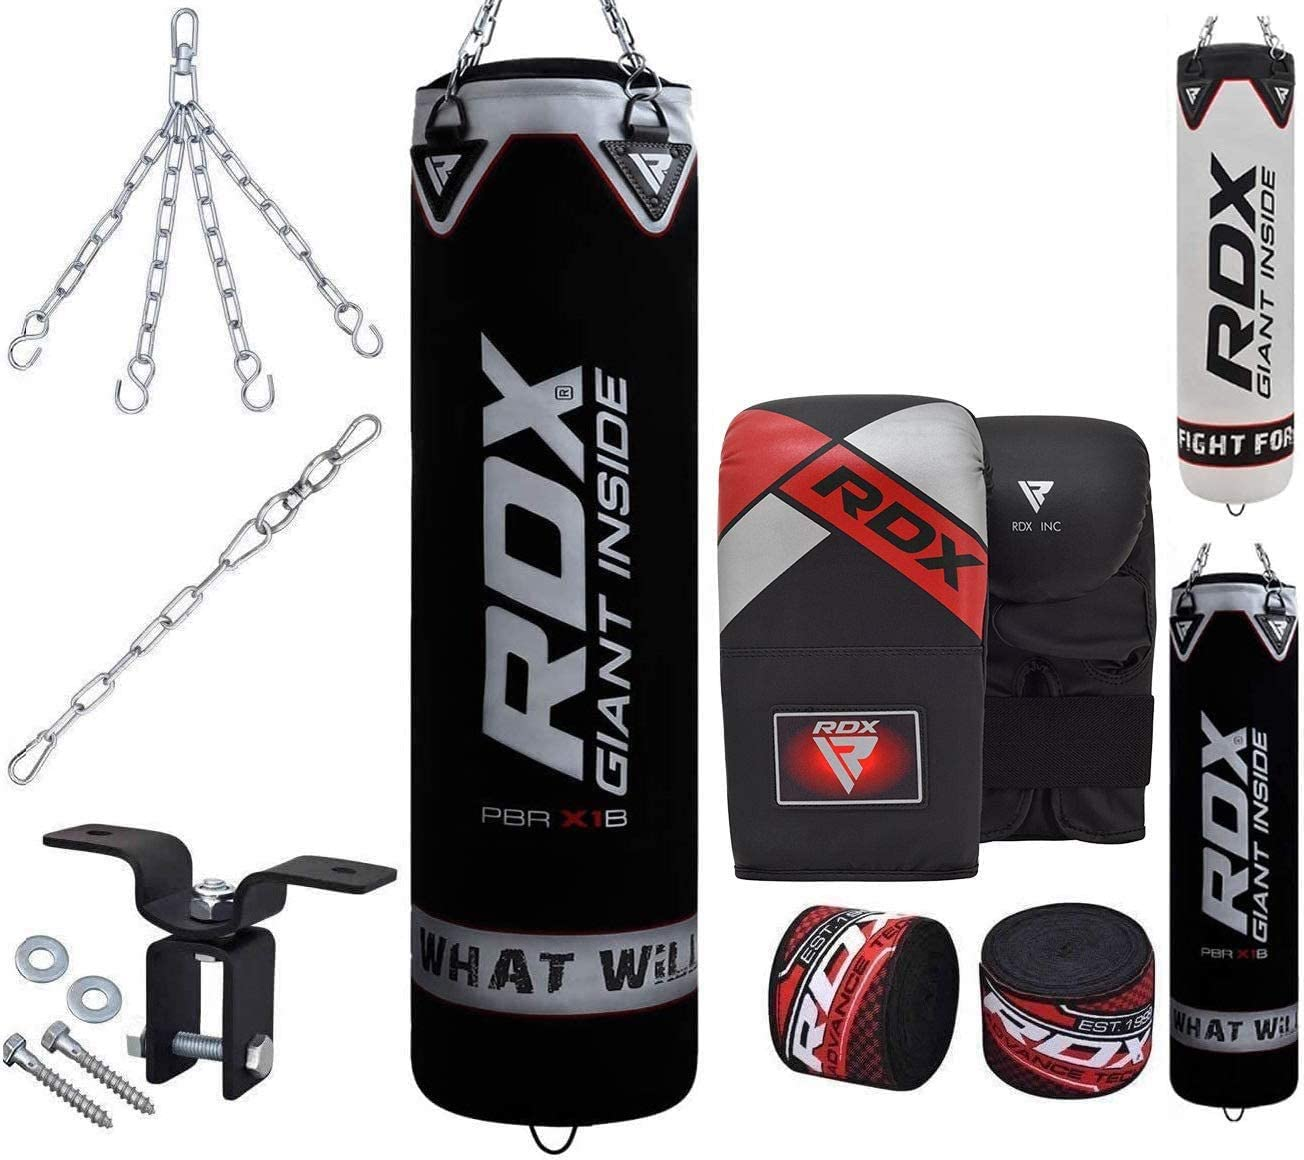 Punching Bag Indoor Outdoor Unfilled Hanging Boxing Heavy Bag for Adults Kids MMA Kickboxing Muay Thai Martial Arts Fight Karate with Chain Color : Green